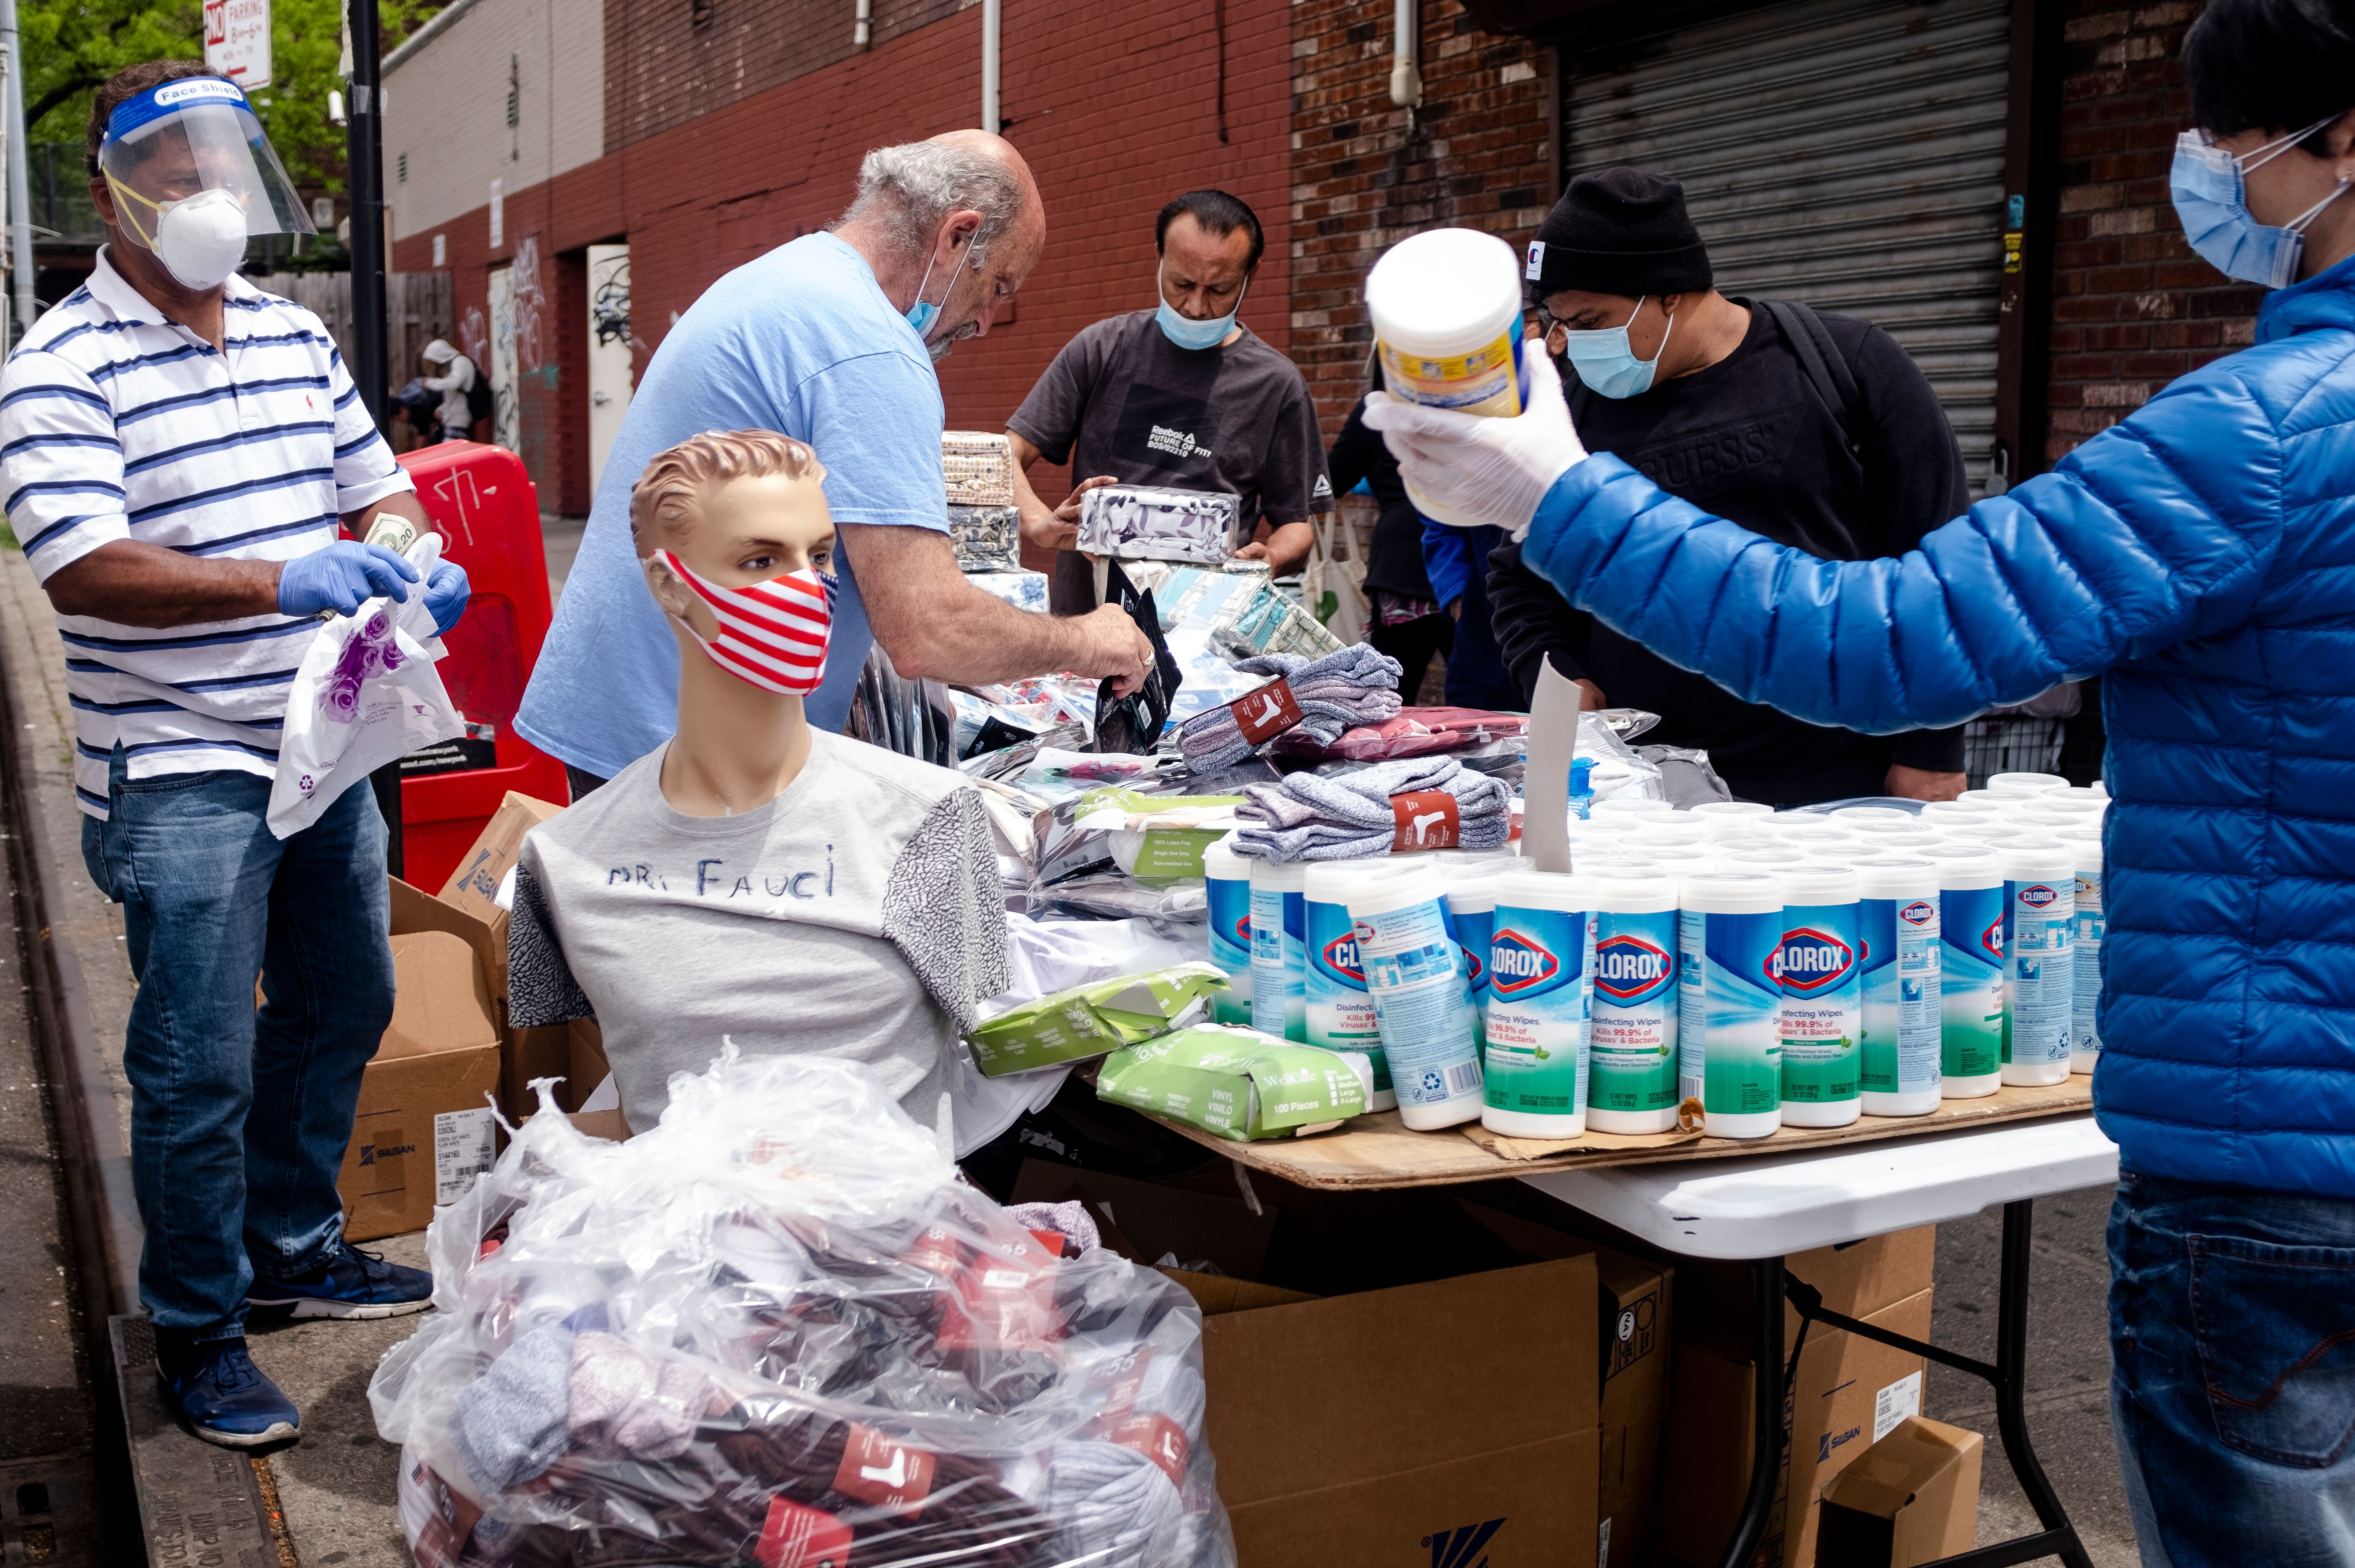 A man sells face masks and disinfection wipes on a street side table on May 18, 2020 in the Elmhurst neighbourhood of Queens in New York City. (Photo by JOHANNES EISELE/AFP via Getty Images)